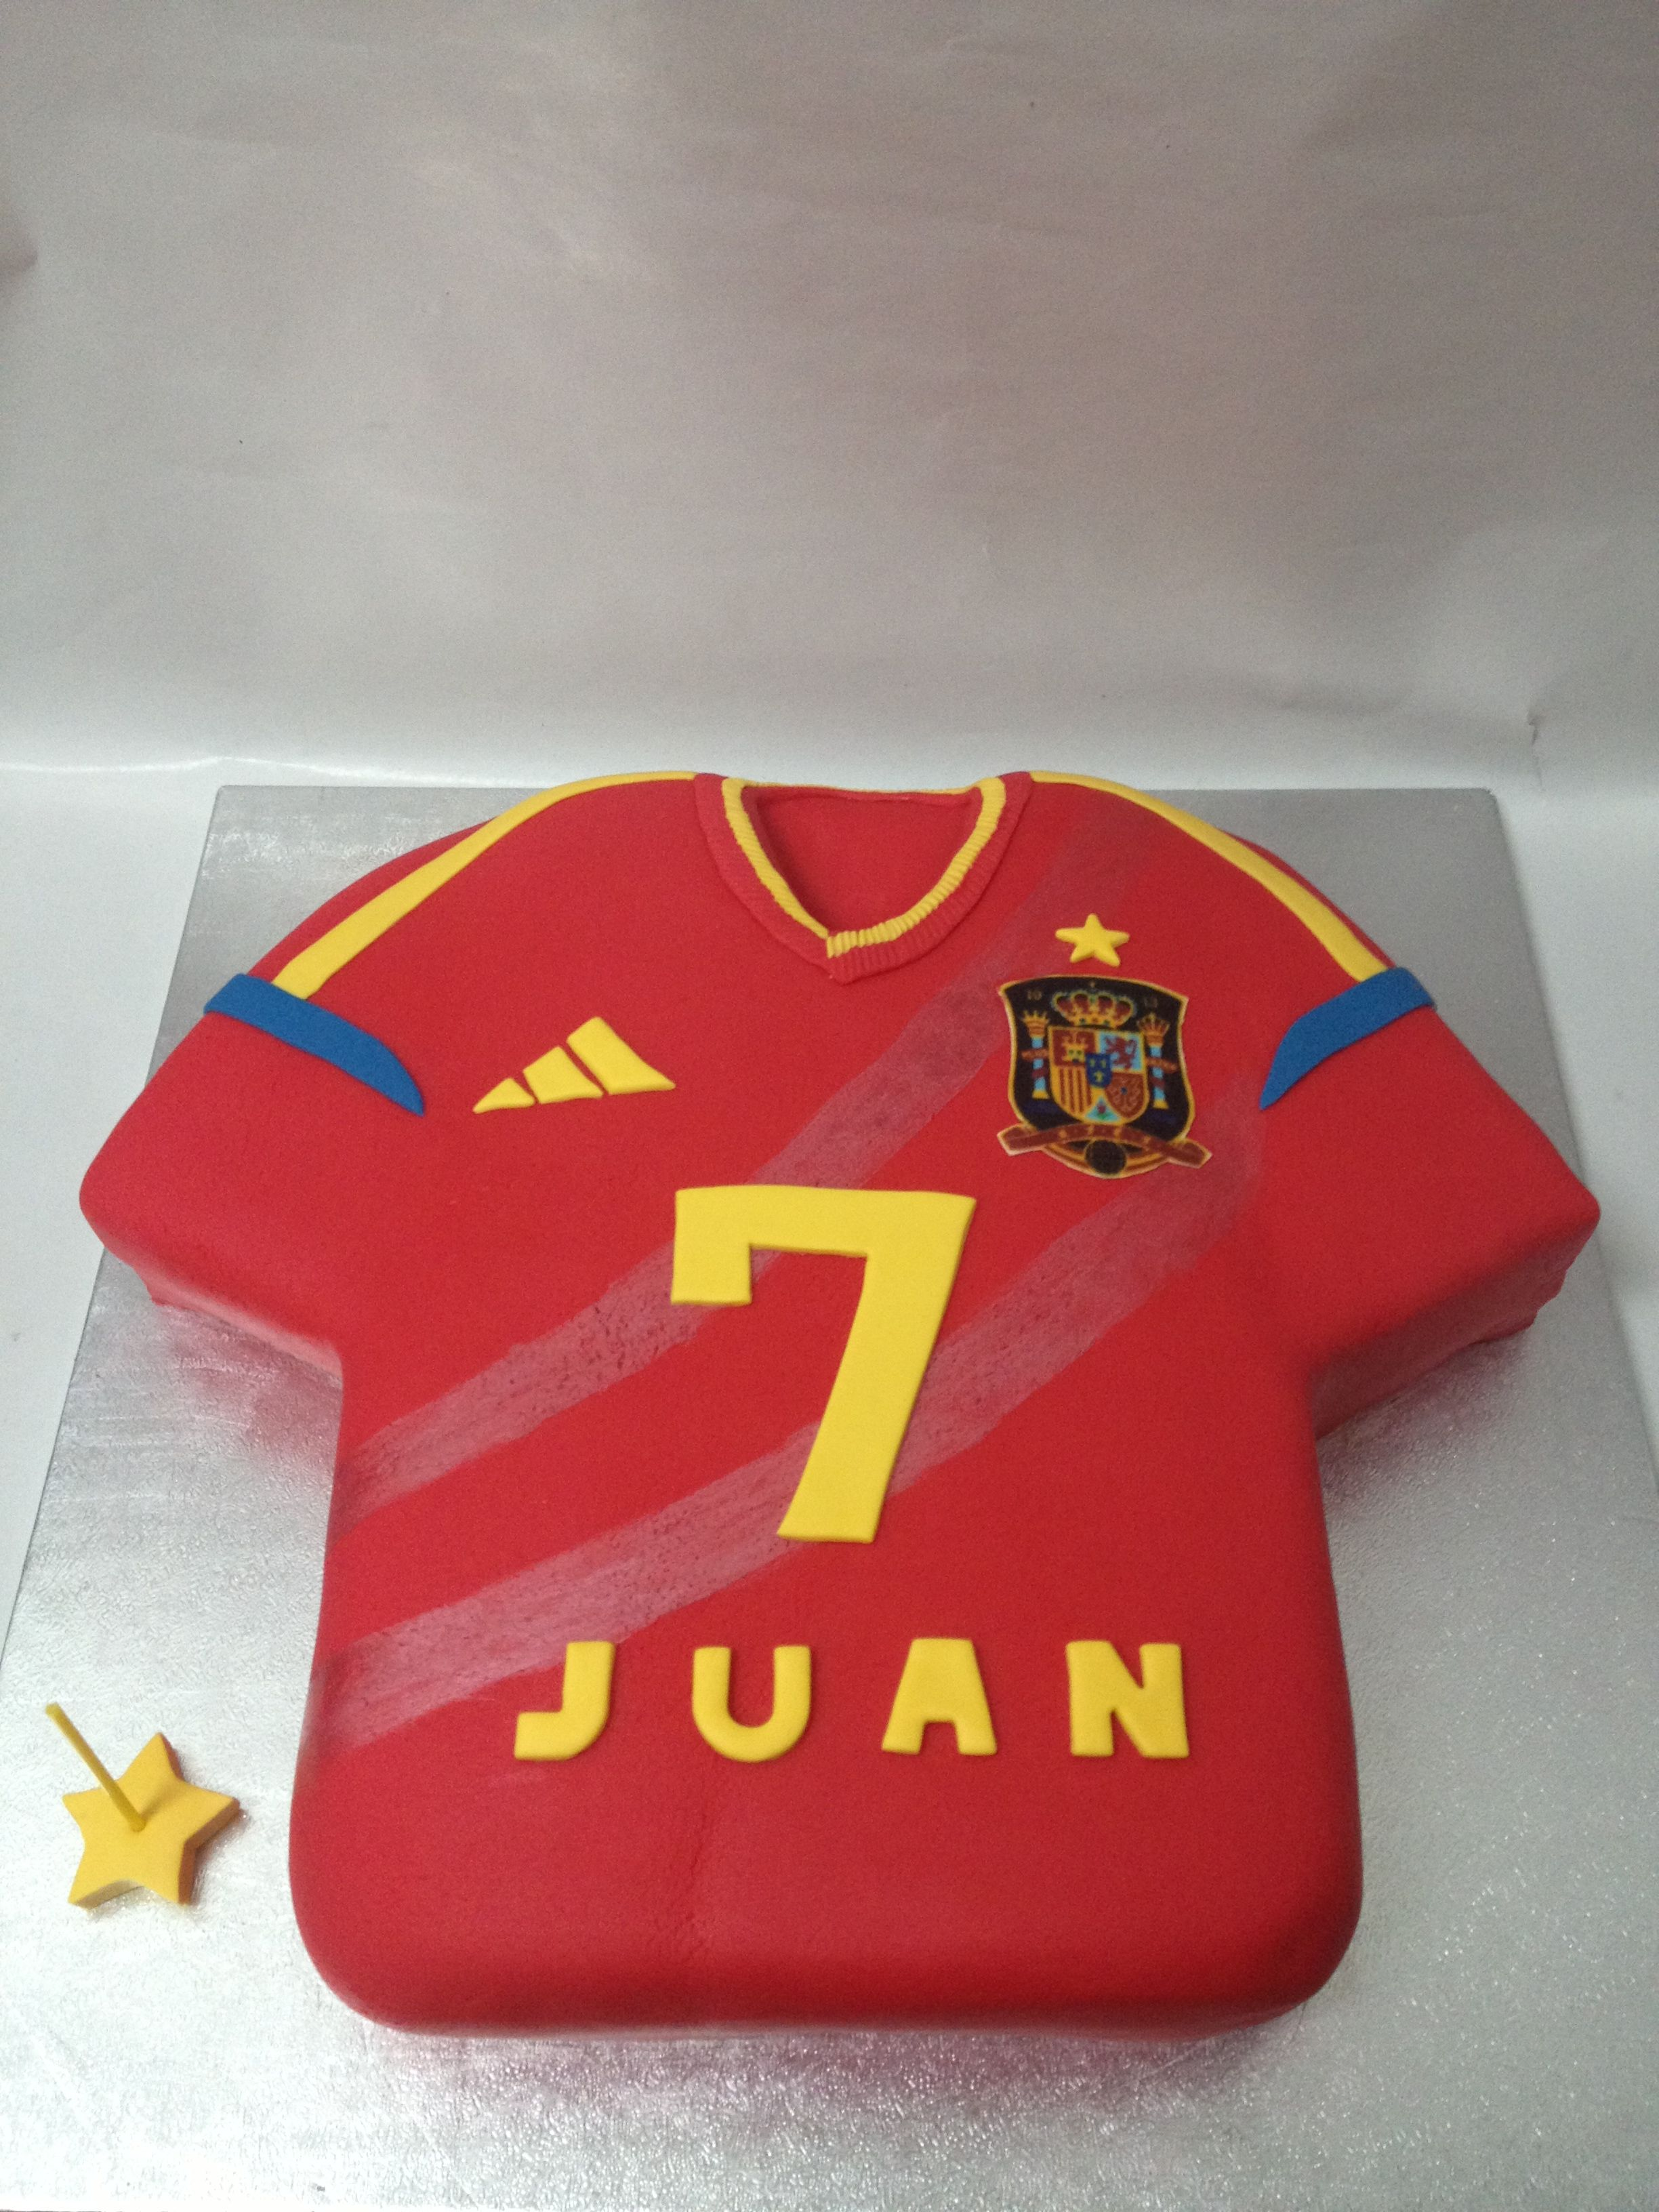 Spanish Football Team T Shirt Cake Diy Projects To Try Pinterest